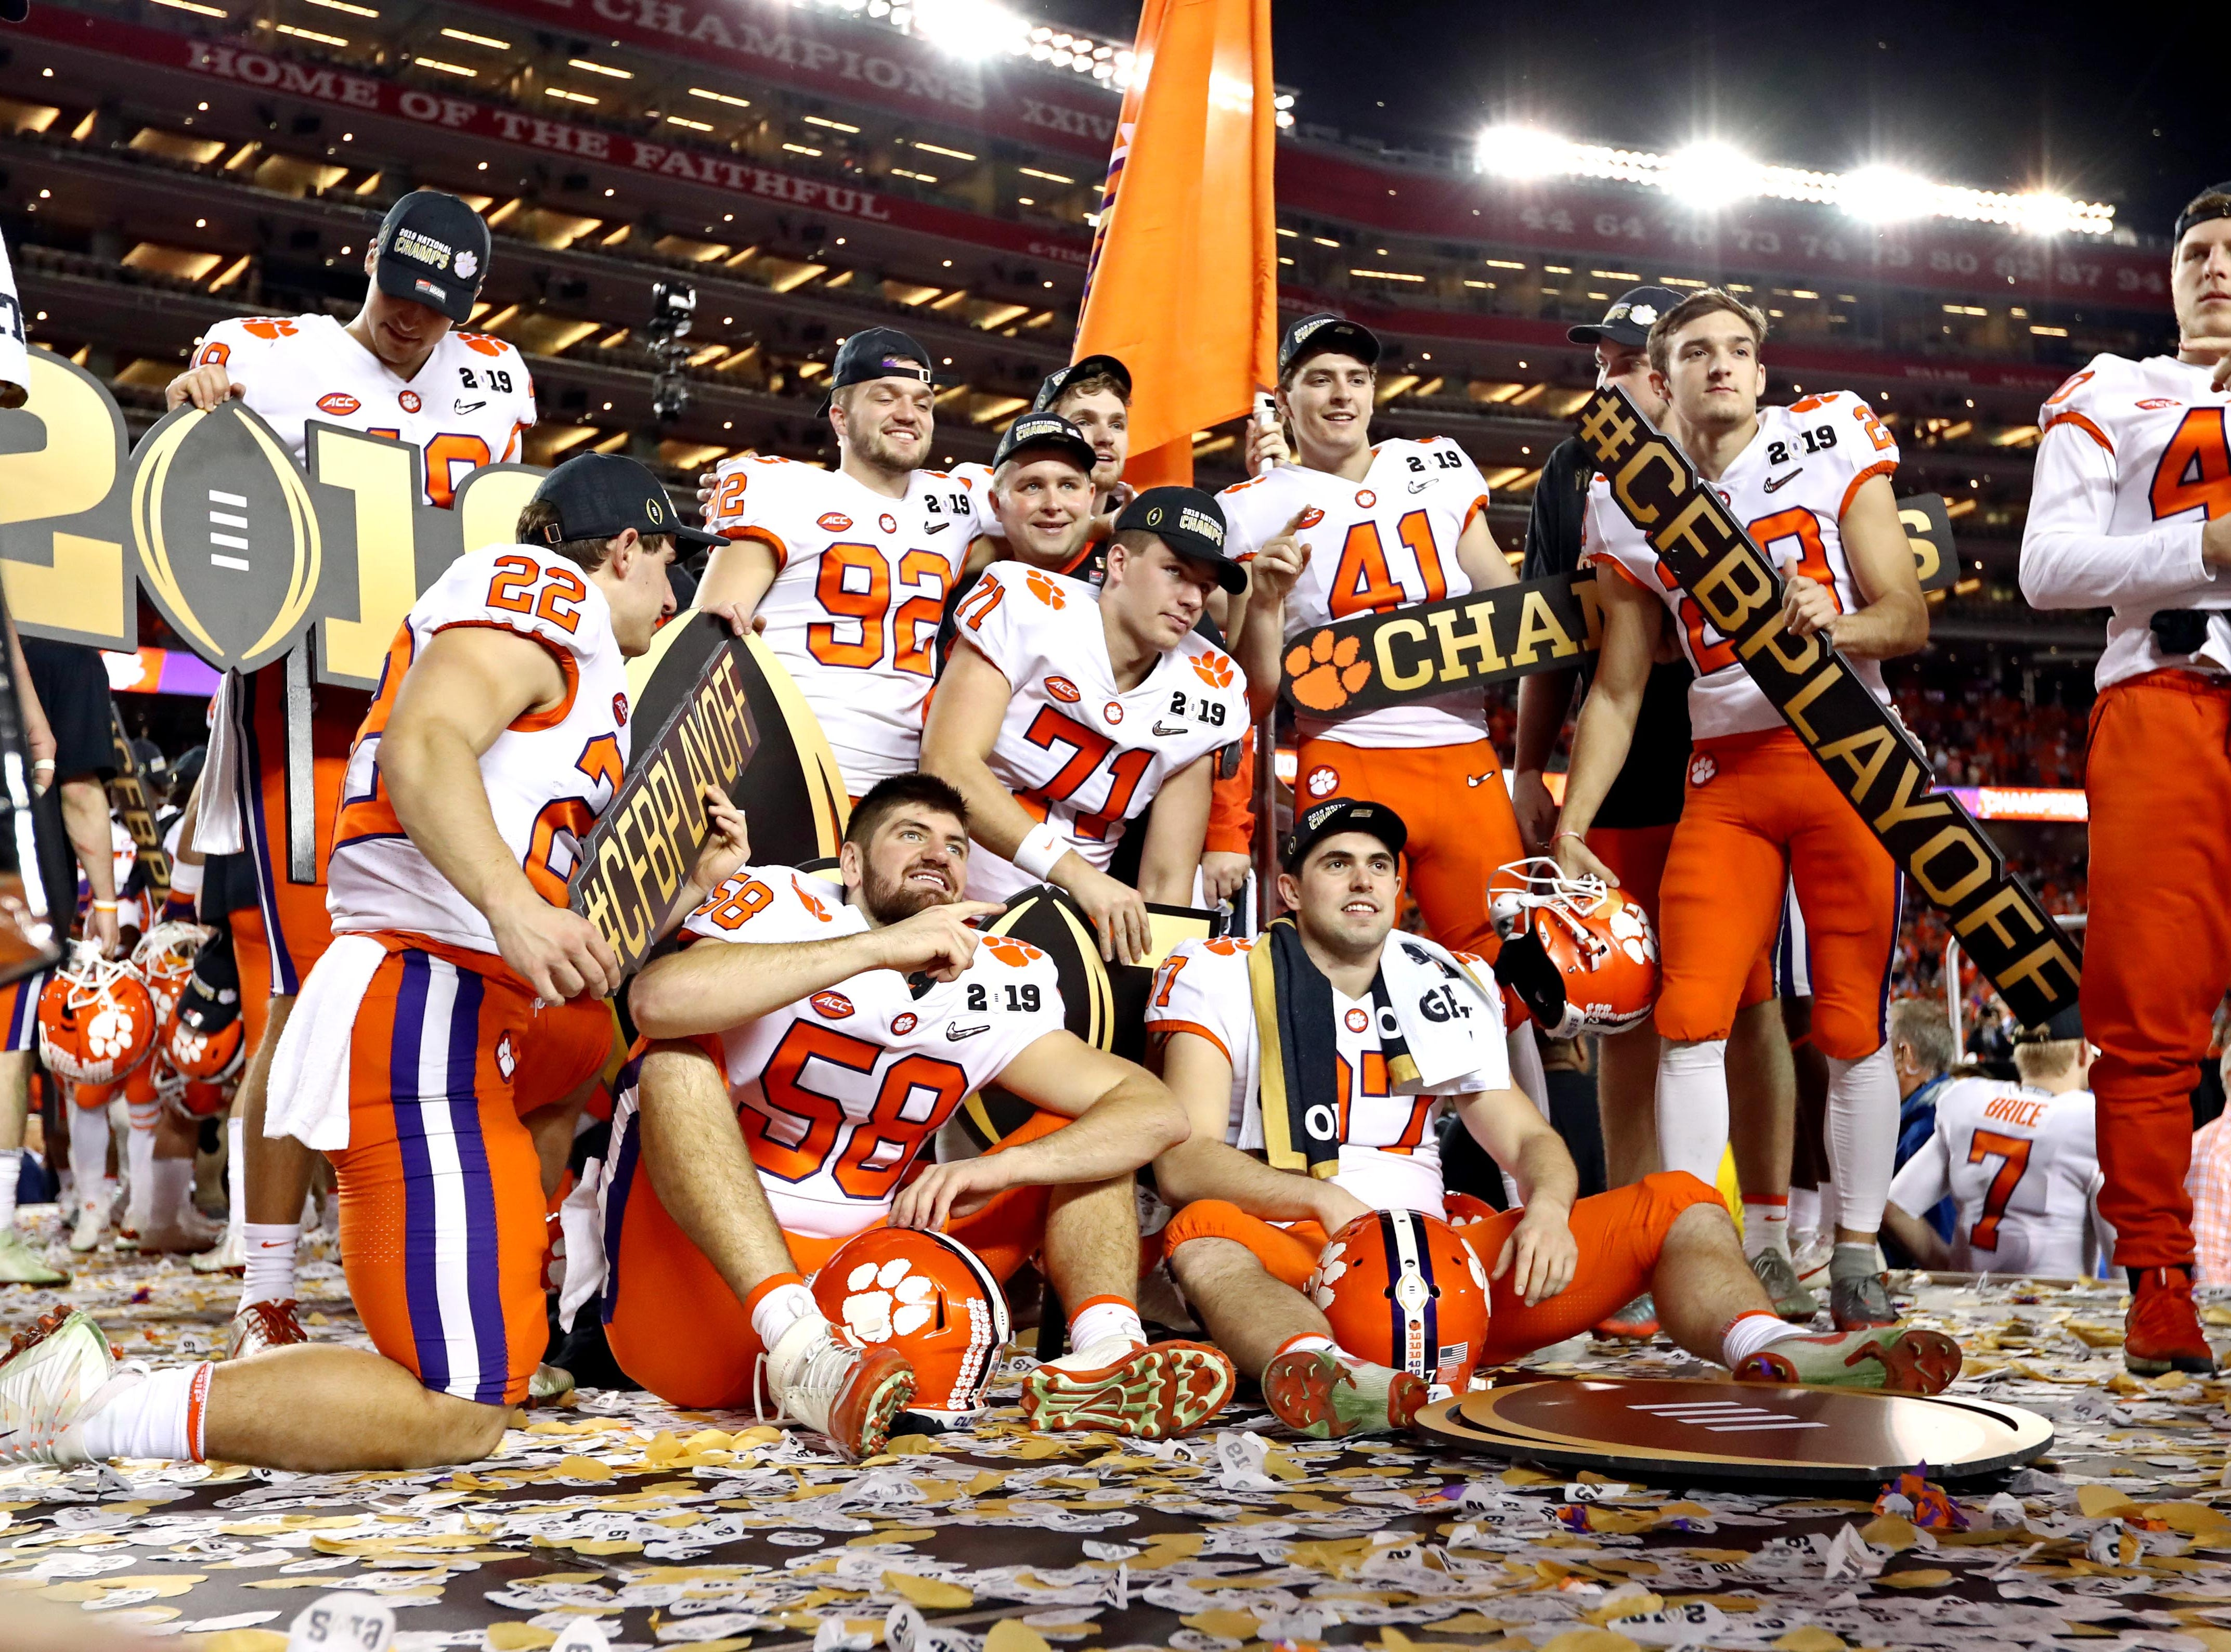 The Clemson Tigers celebrate after beating the Alabama Crimson Tide.